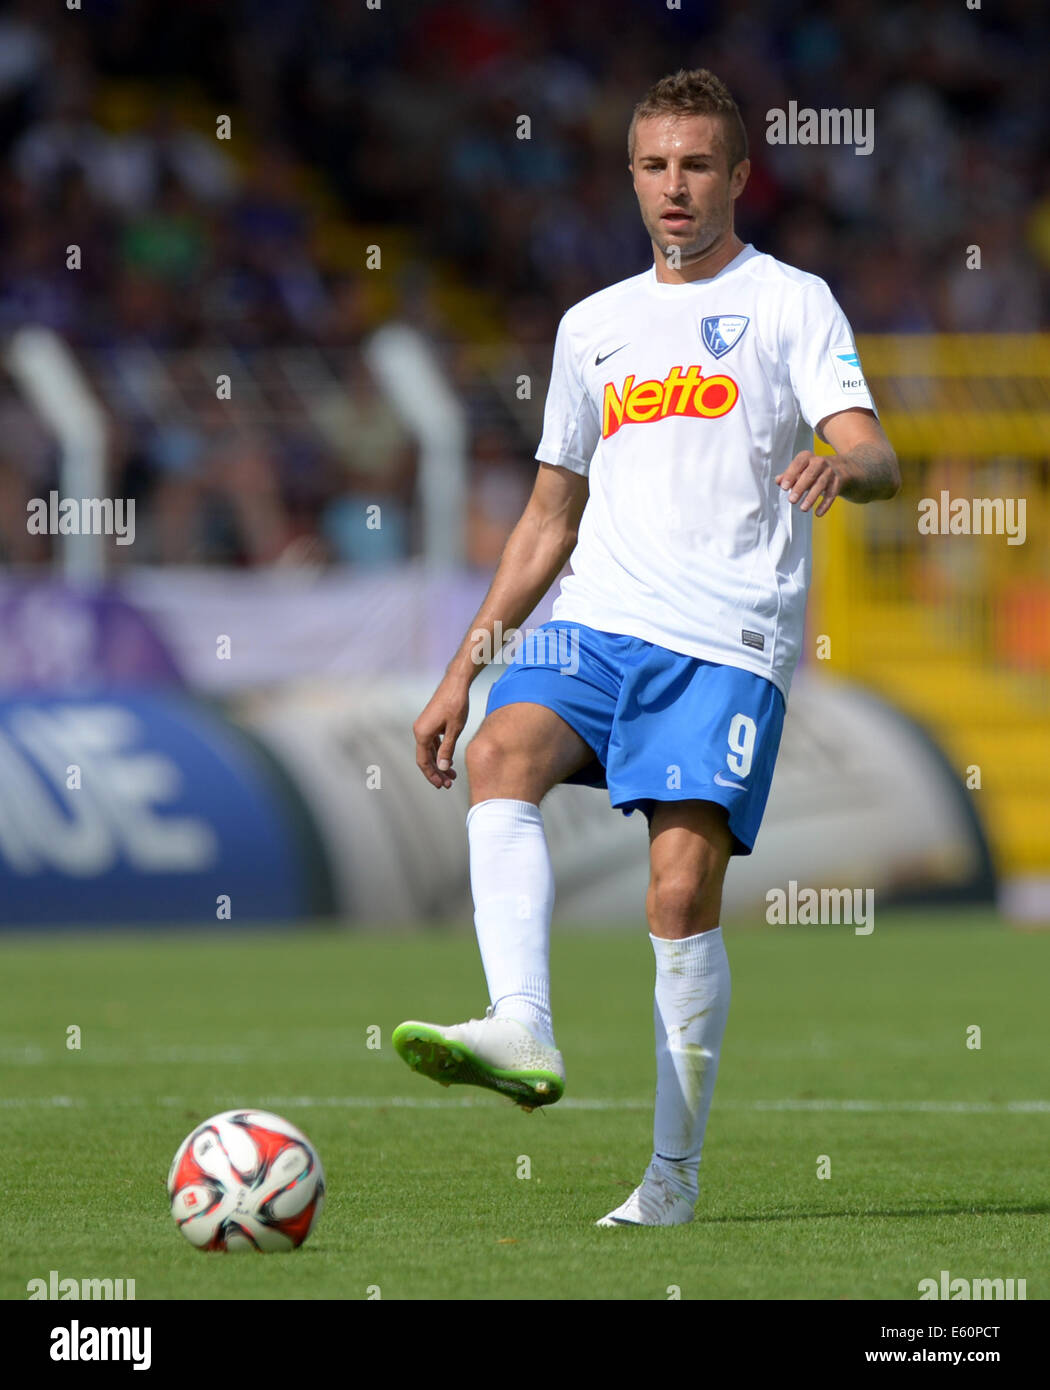 Aue, Germany. 09th Aug, 2014. Bochum's Stanislav Sestak vies for the ball during the German second league soccer - Stock Image